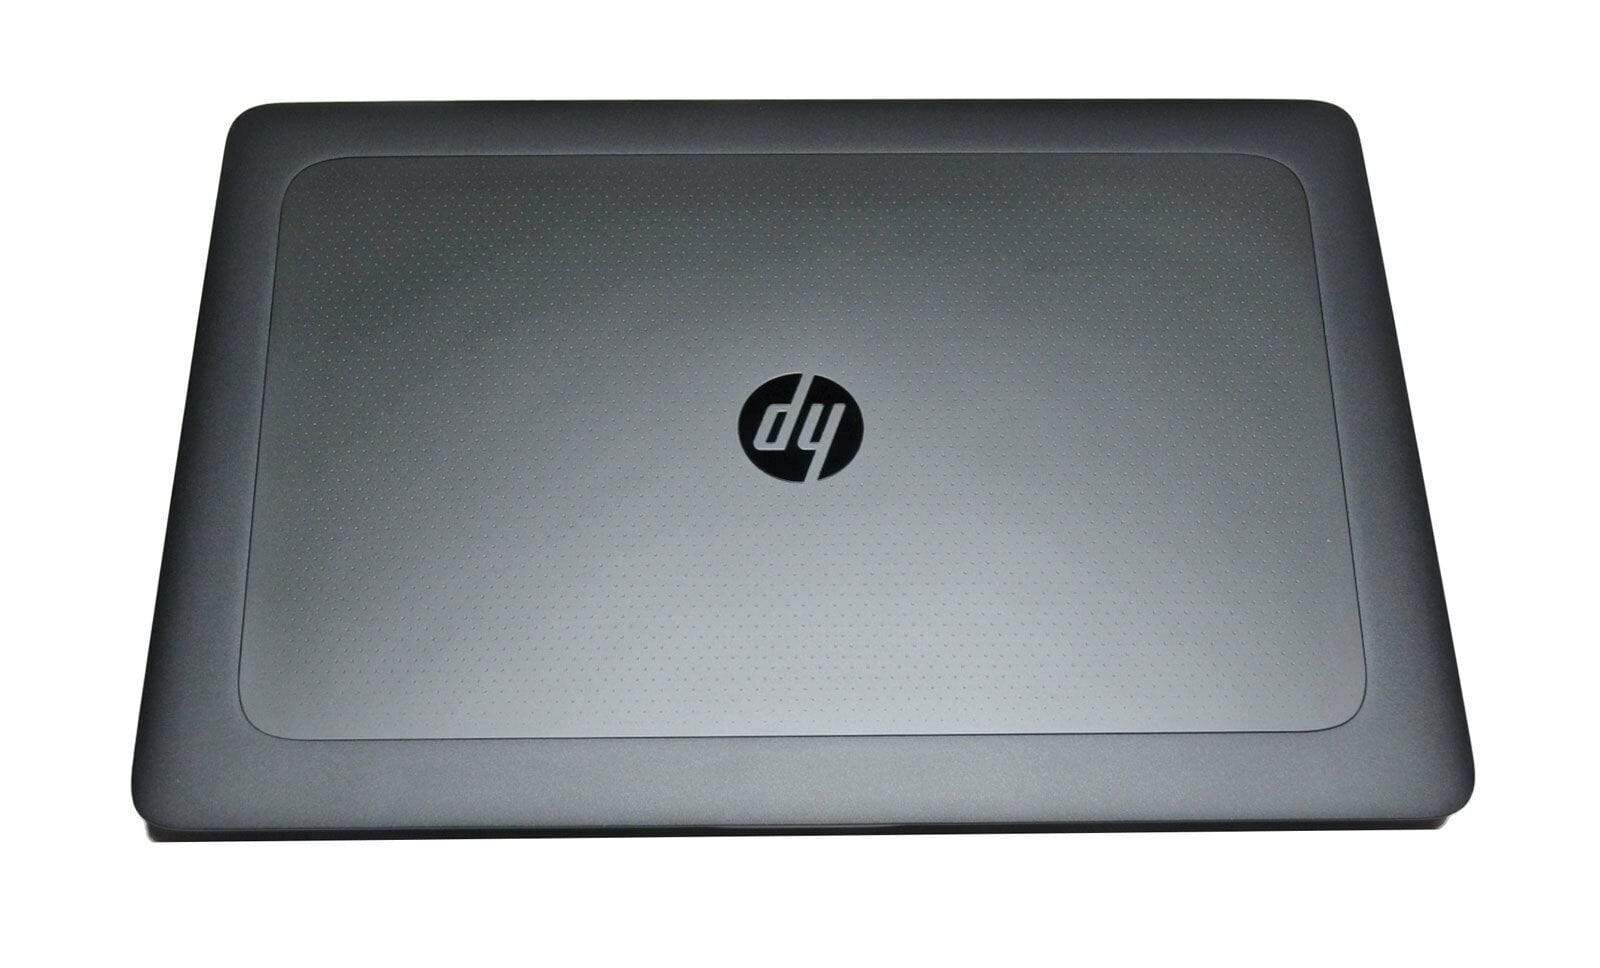 HP ZBook 17 G3 CAD Laptop: 32GB RAM, Core i7, Quadro, 256GB+HDD, Warranty - CruiseTech